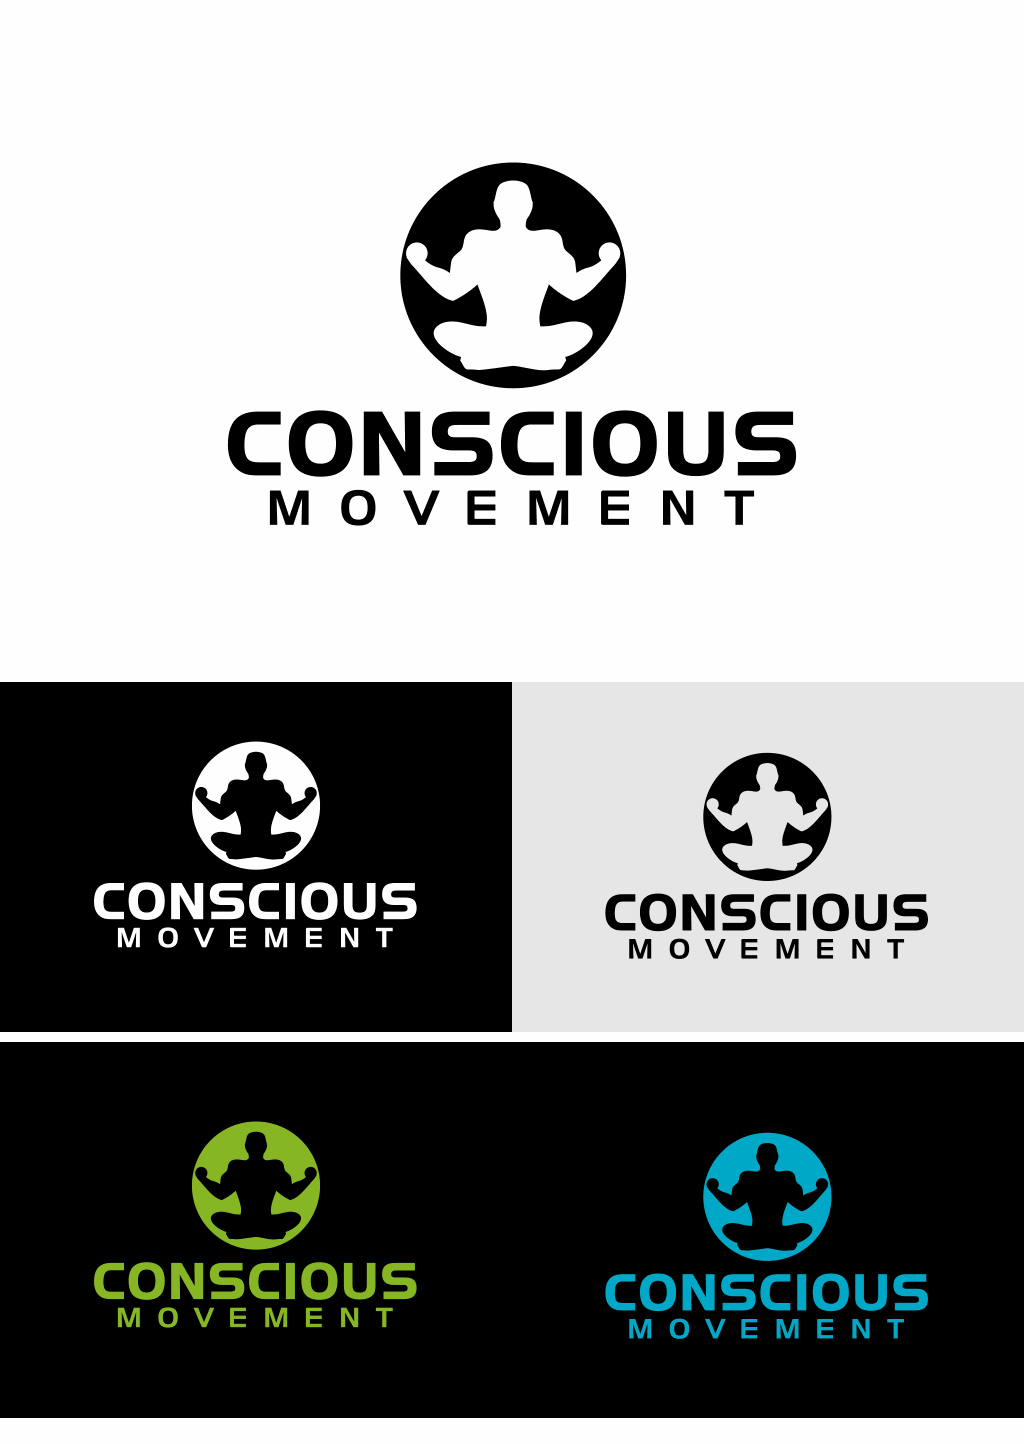 Create a simple , sleek lifestyle/ fitness brand logo